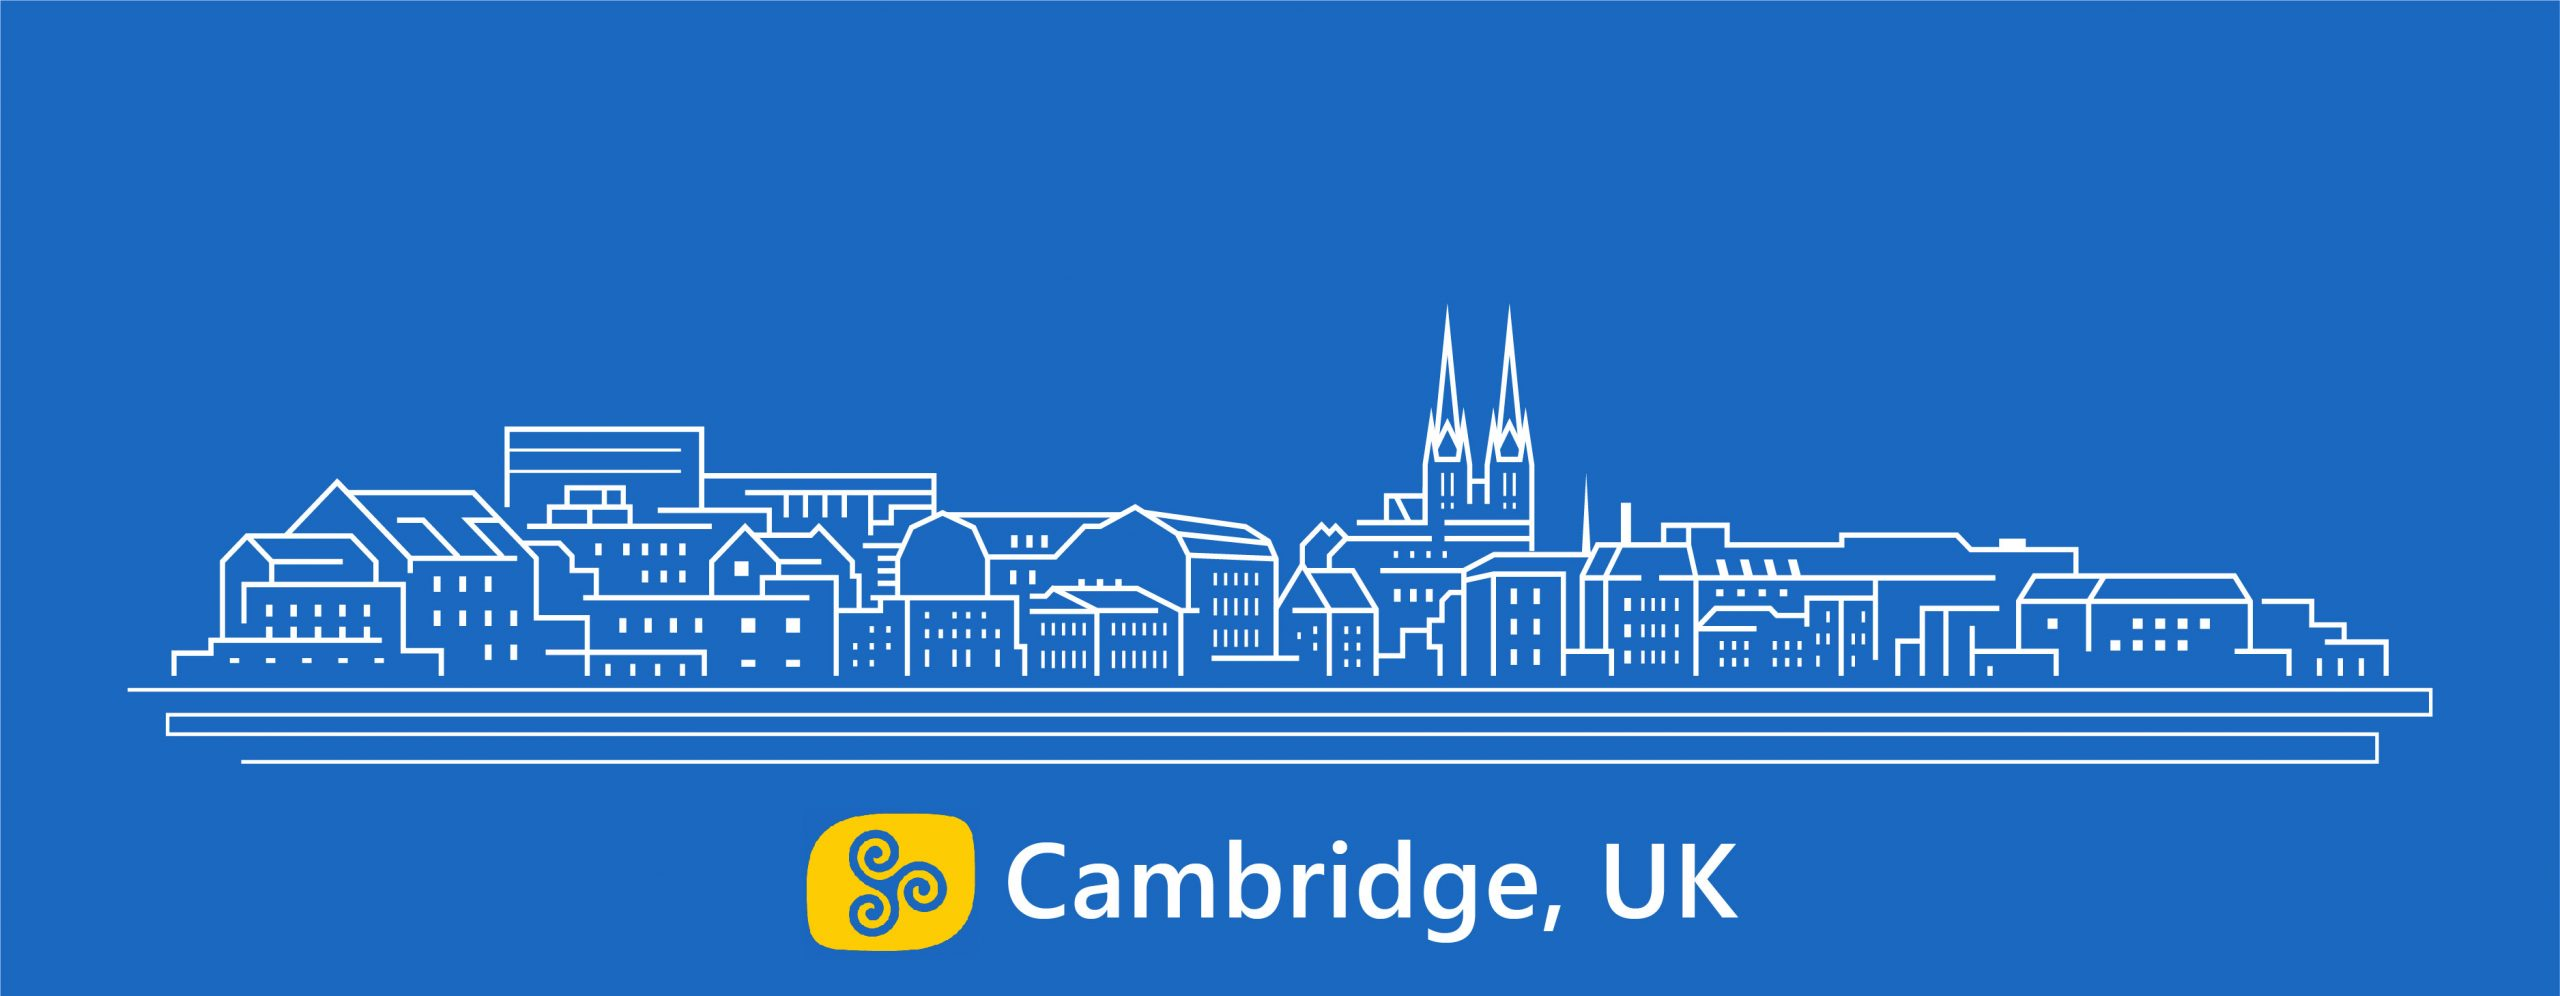 Cambridge blue overlay with city name_Final_2.0